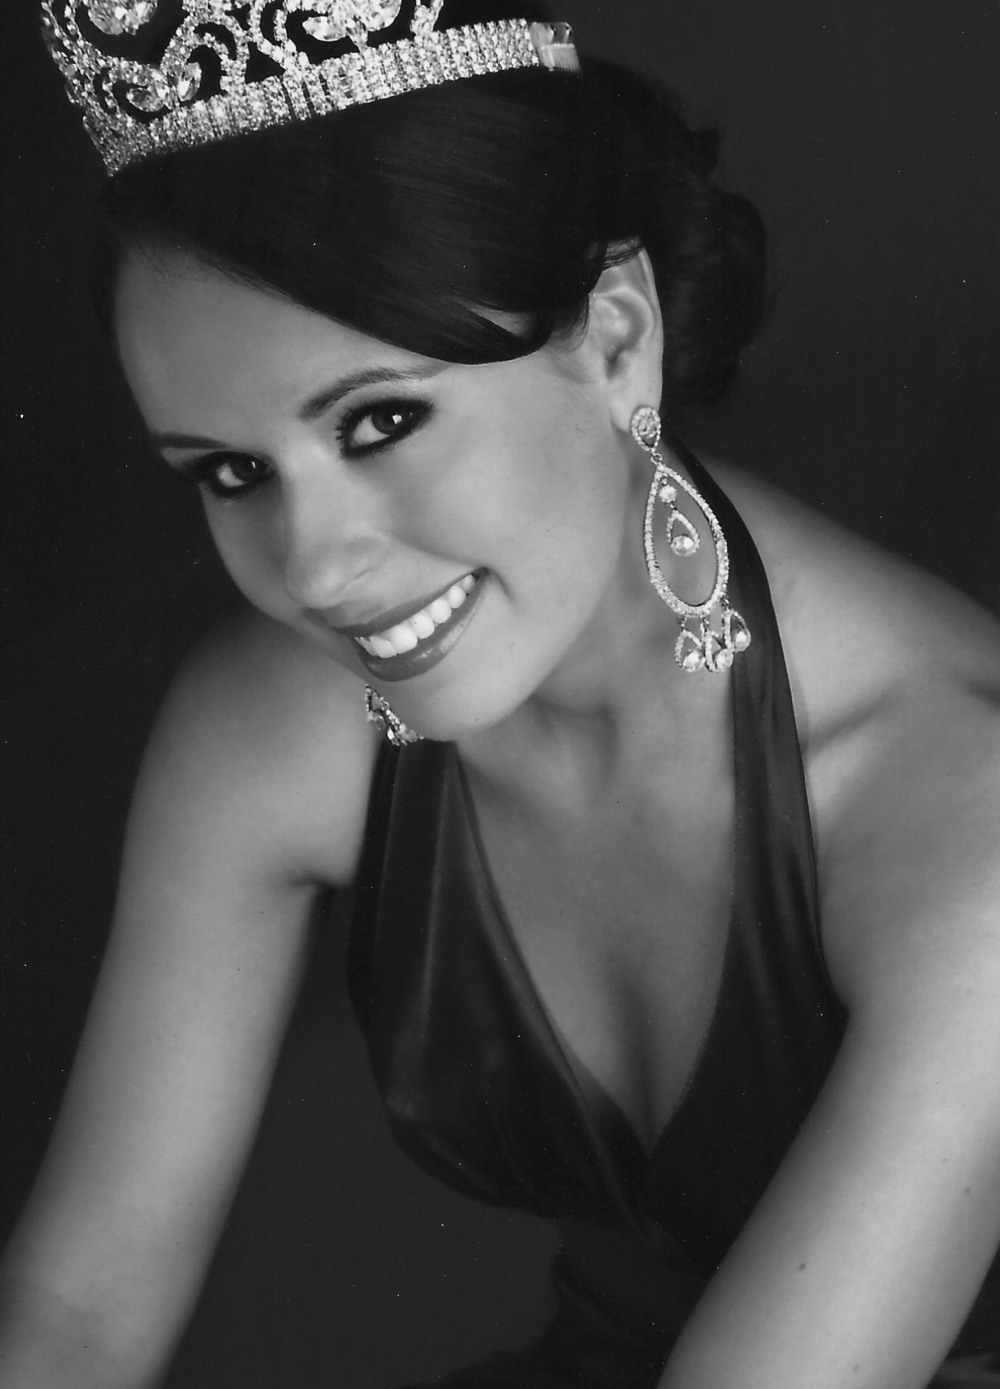 Mrs. Colorado America 2007